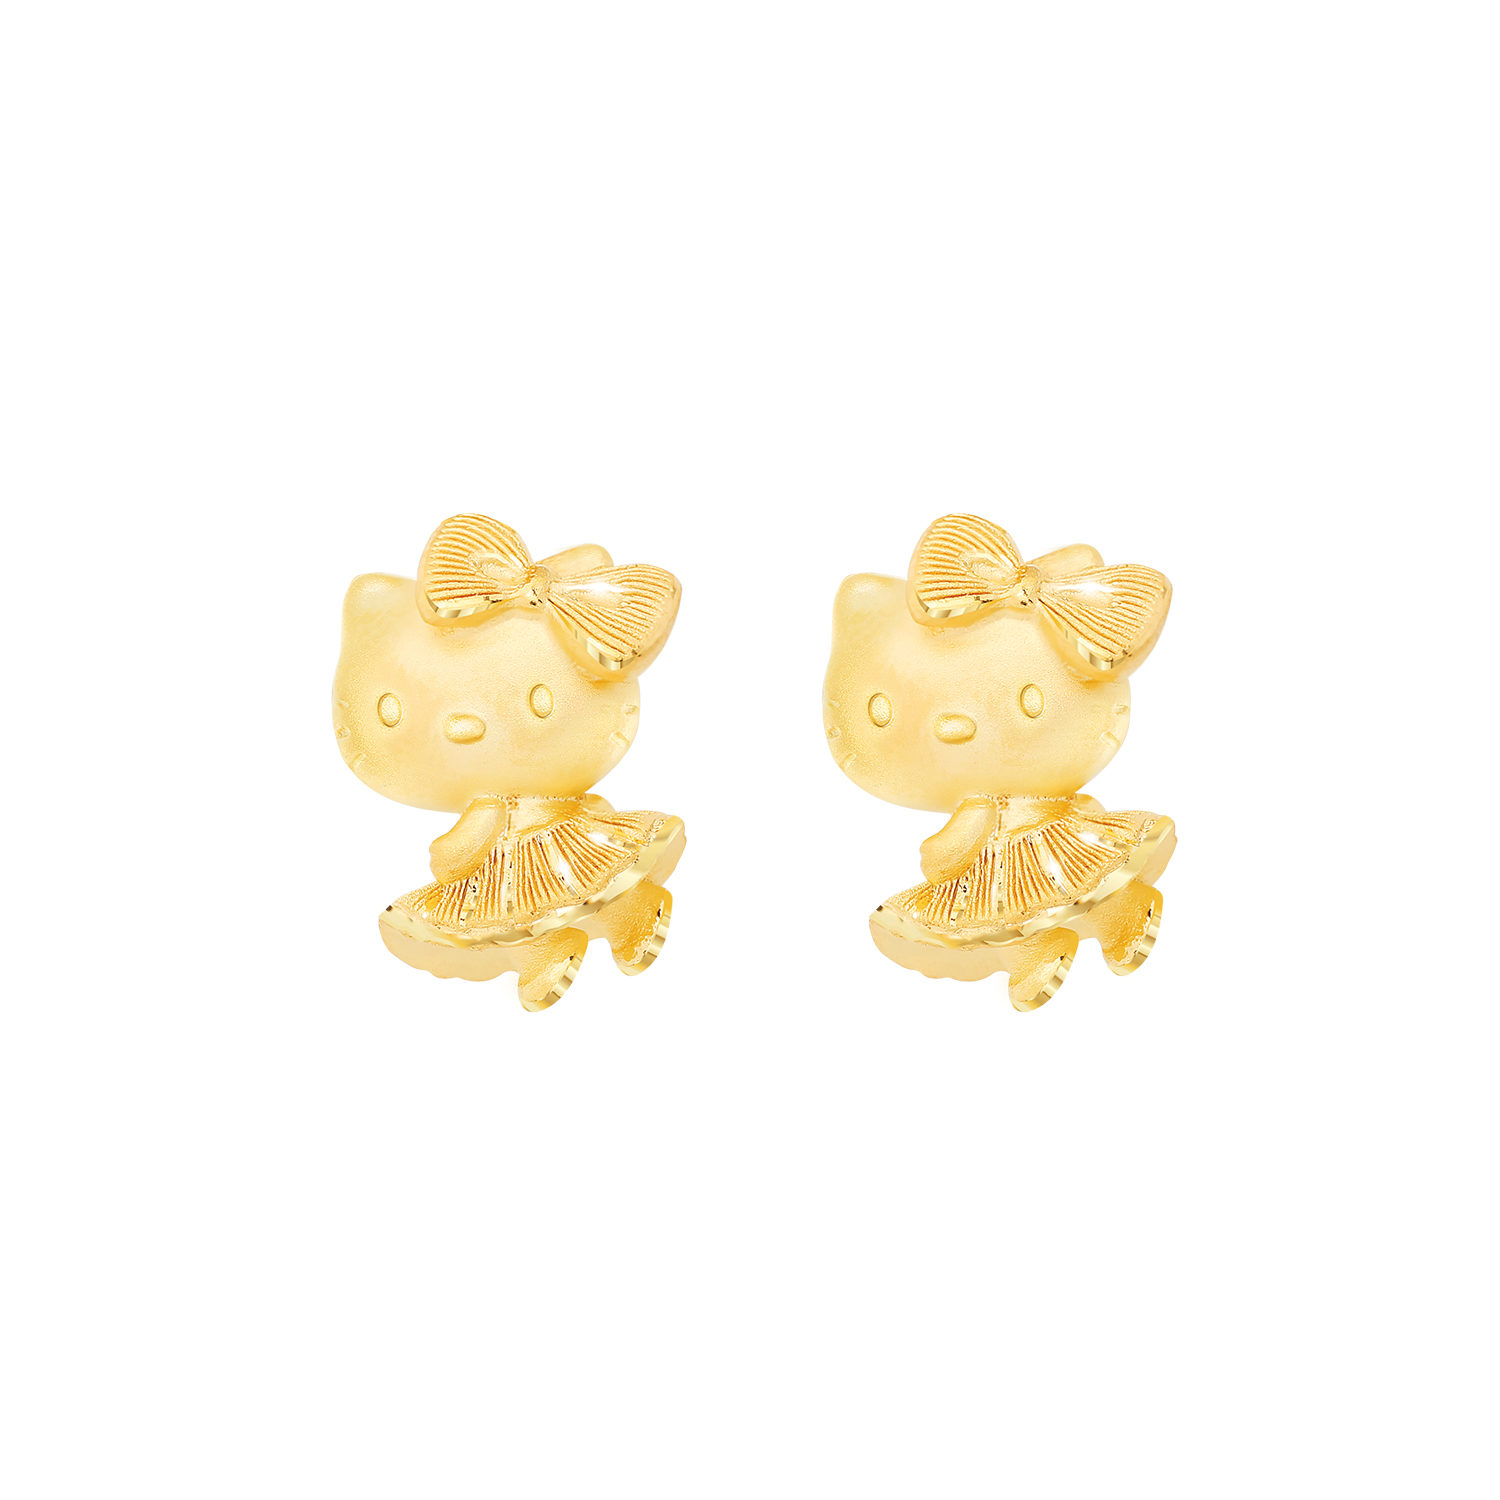 f3d796706 Hello Kitty Skirt Earring – Prima Gold – พรีม่าโกลด์